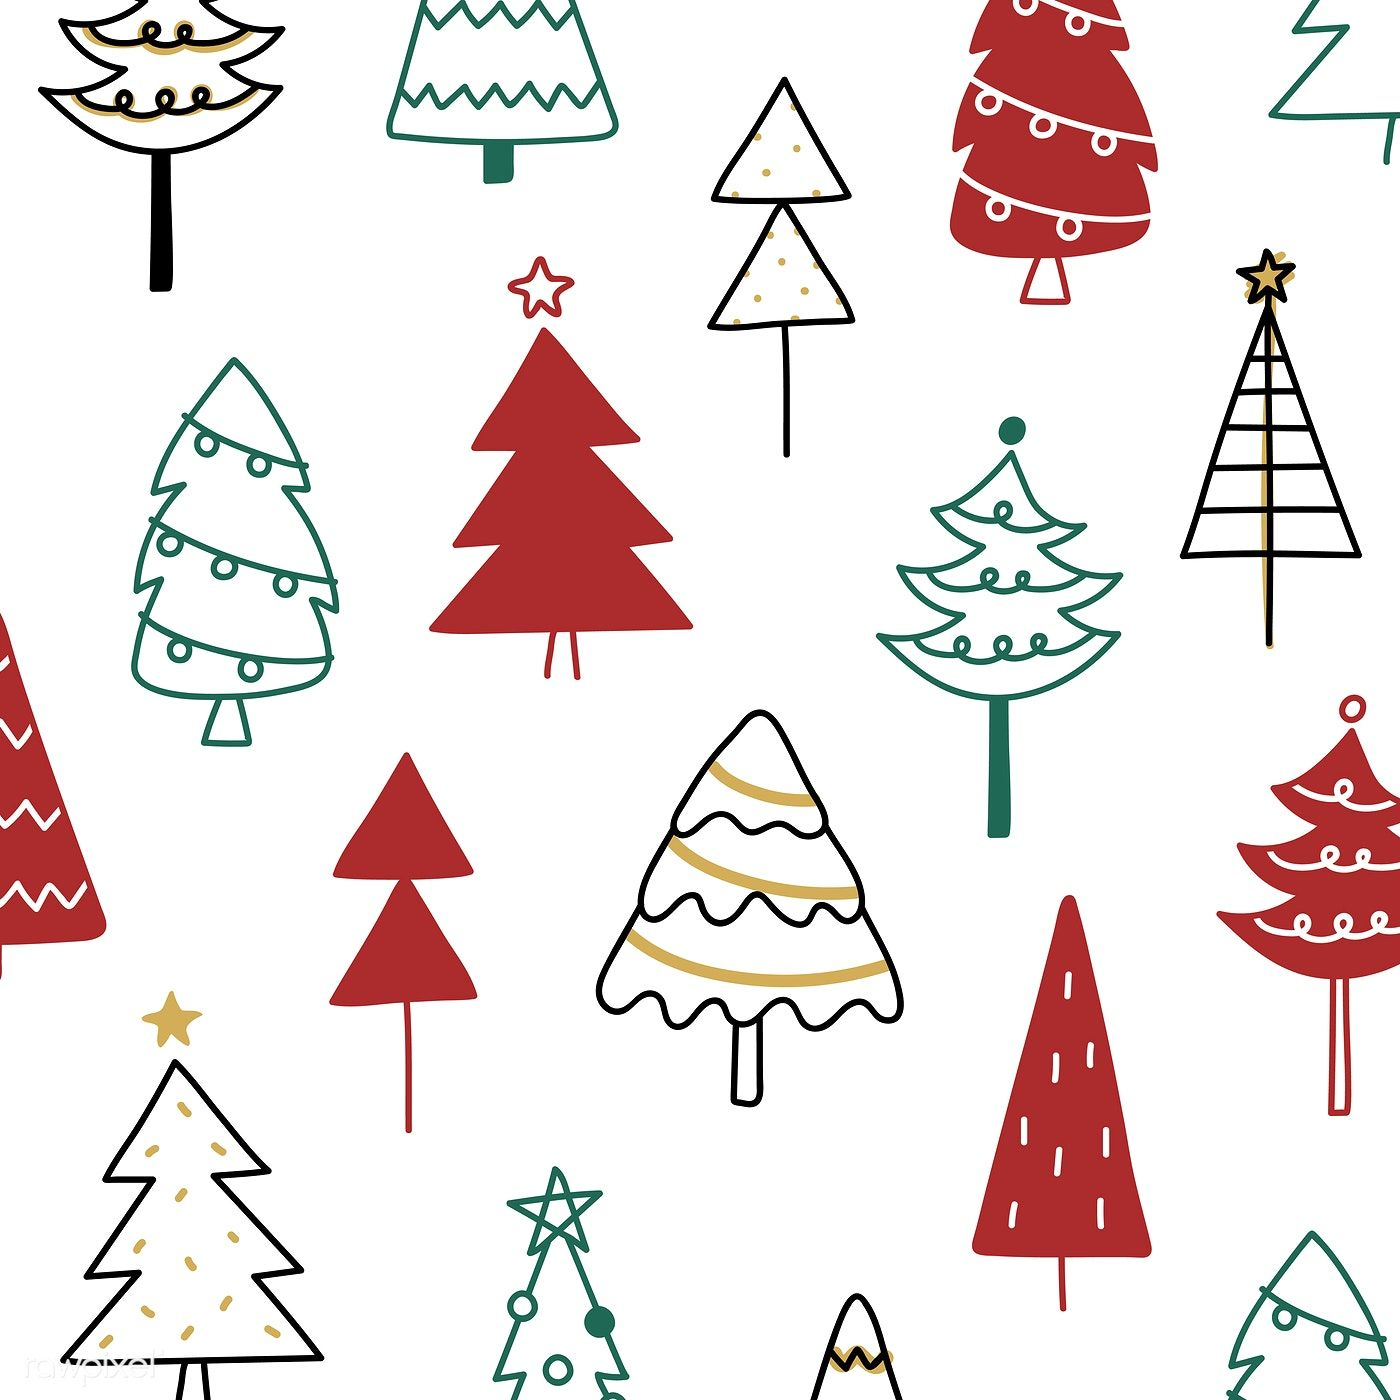 Download Premium Vector Of Christmas Pine Tree Pattern Background Drawing Christmas Tree Pattern Tree Doodle Tree Patterns